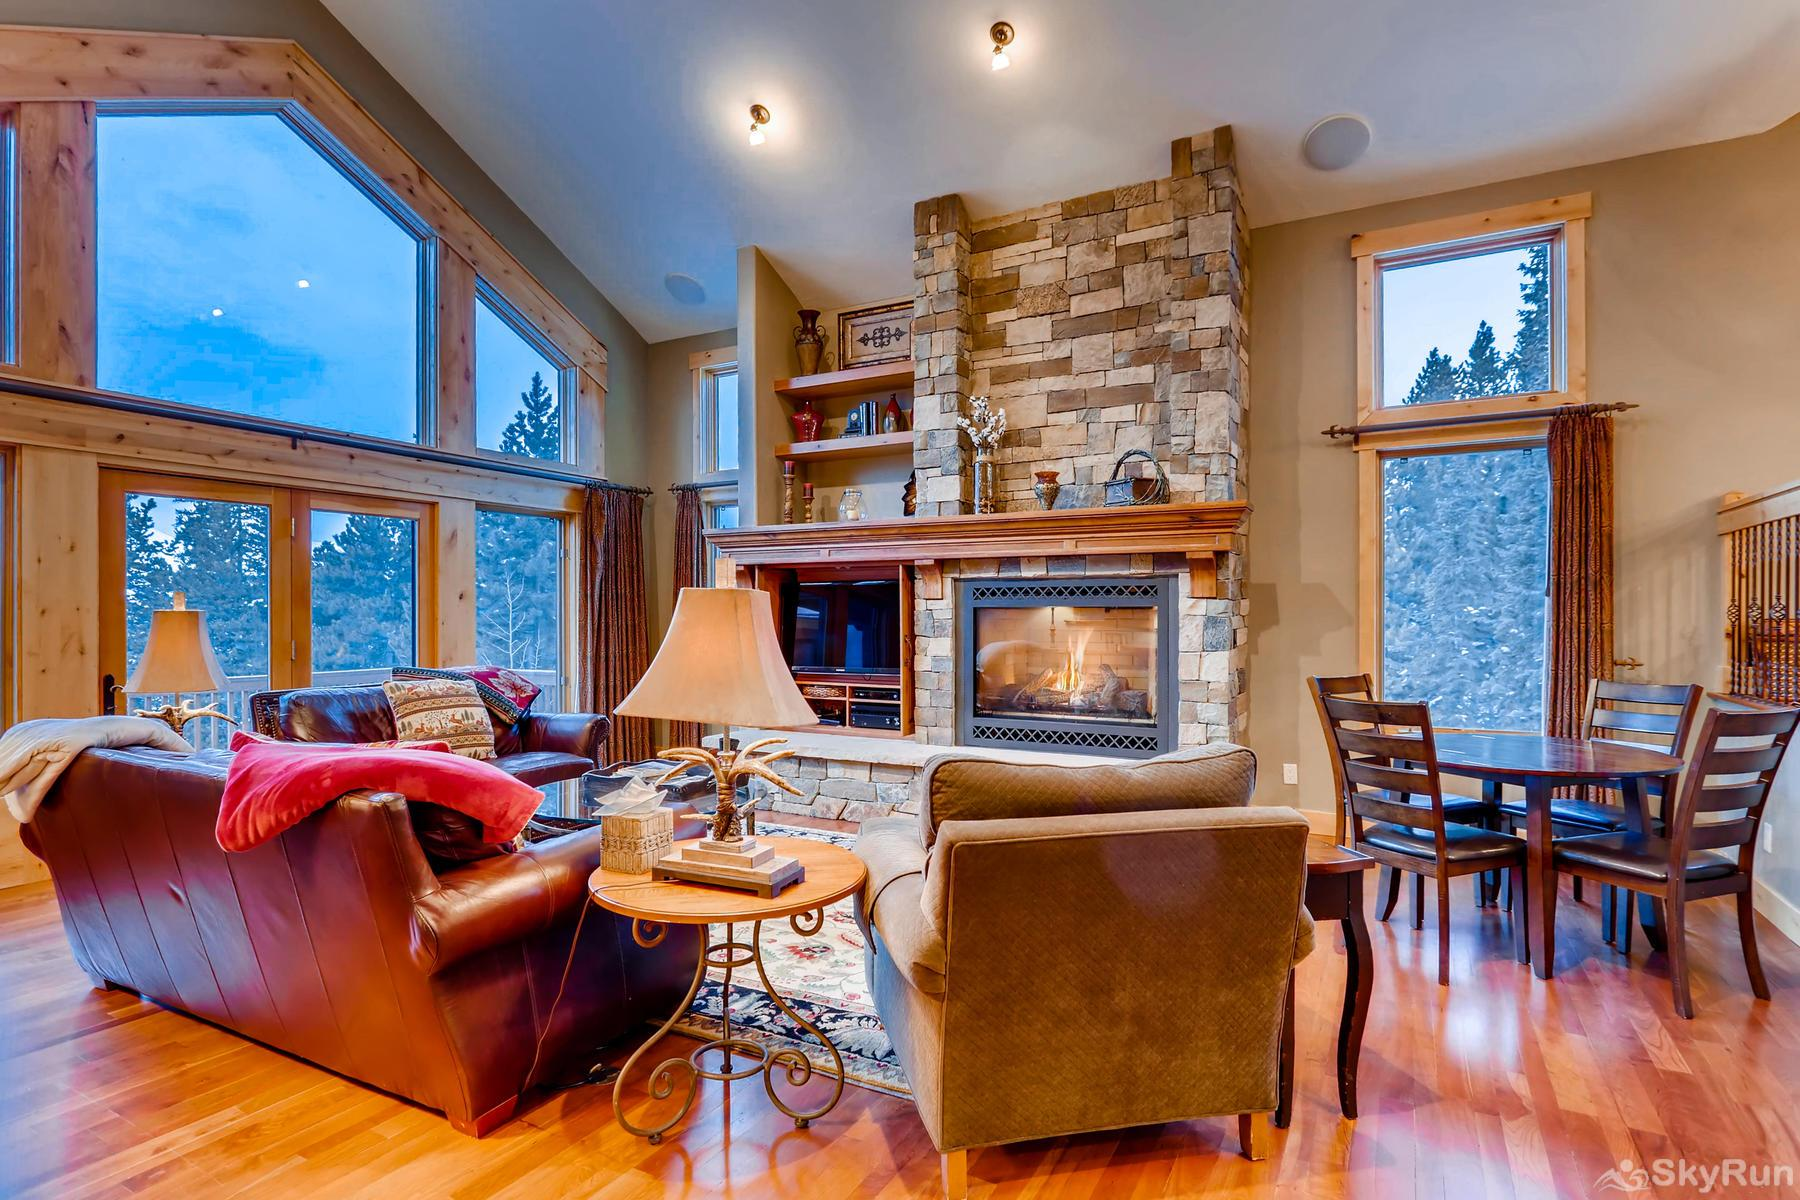 Nangle Woods Retreat Luxurious living room with lofted ceilings and large windows to enjoy the views!